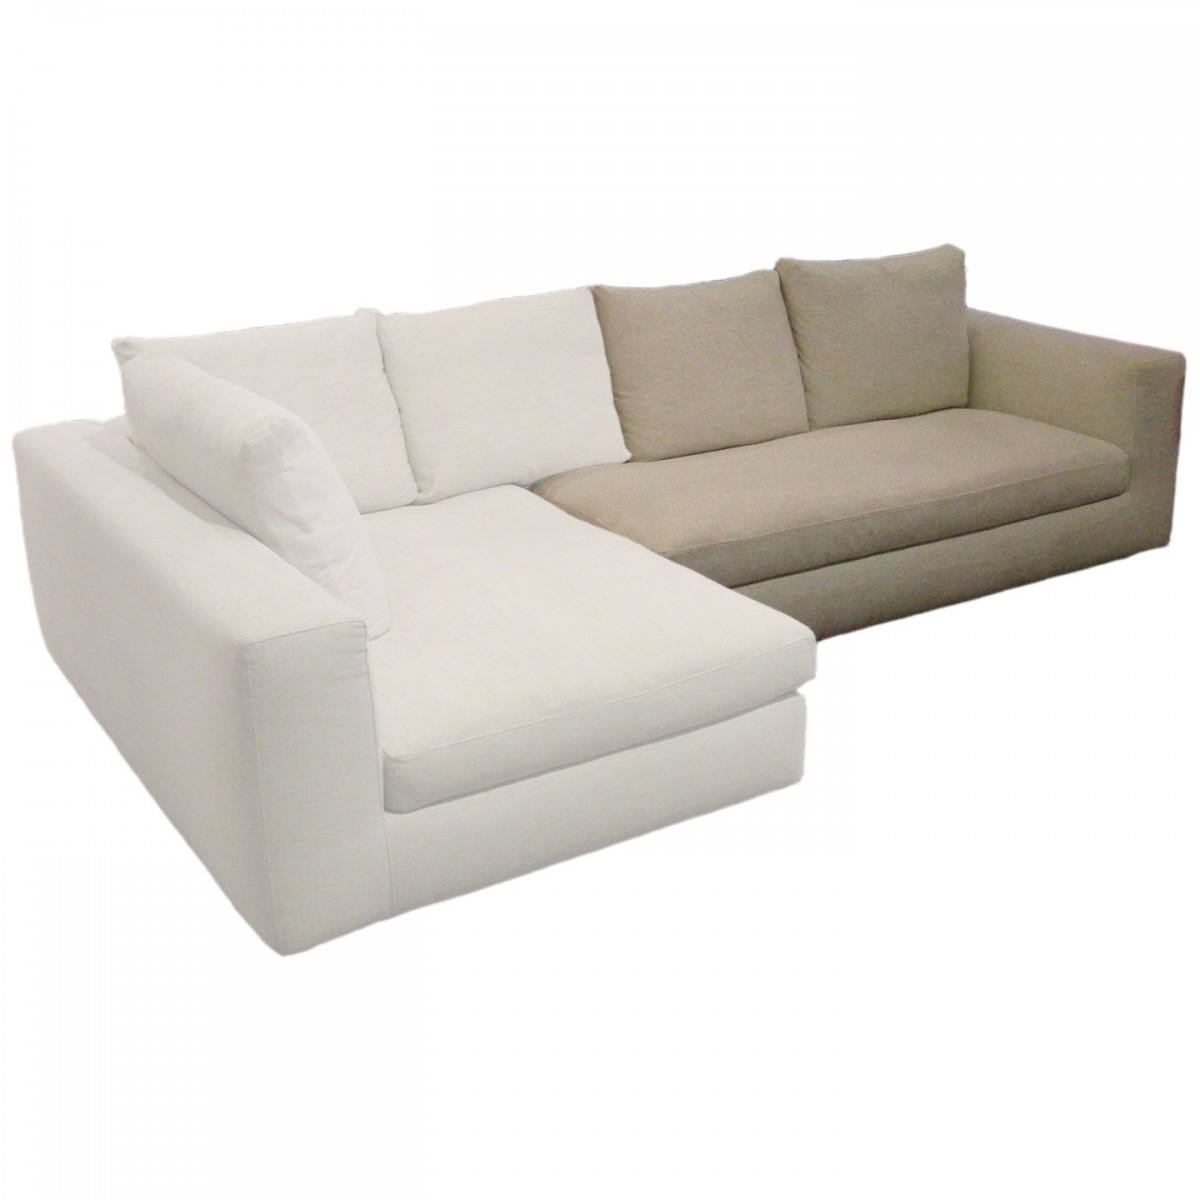 Marea 1 Arm Sofa 188X108Cm Within Gordon Arm Sofa Chairs (Image 15 of 20)